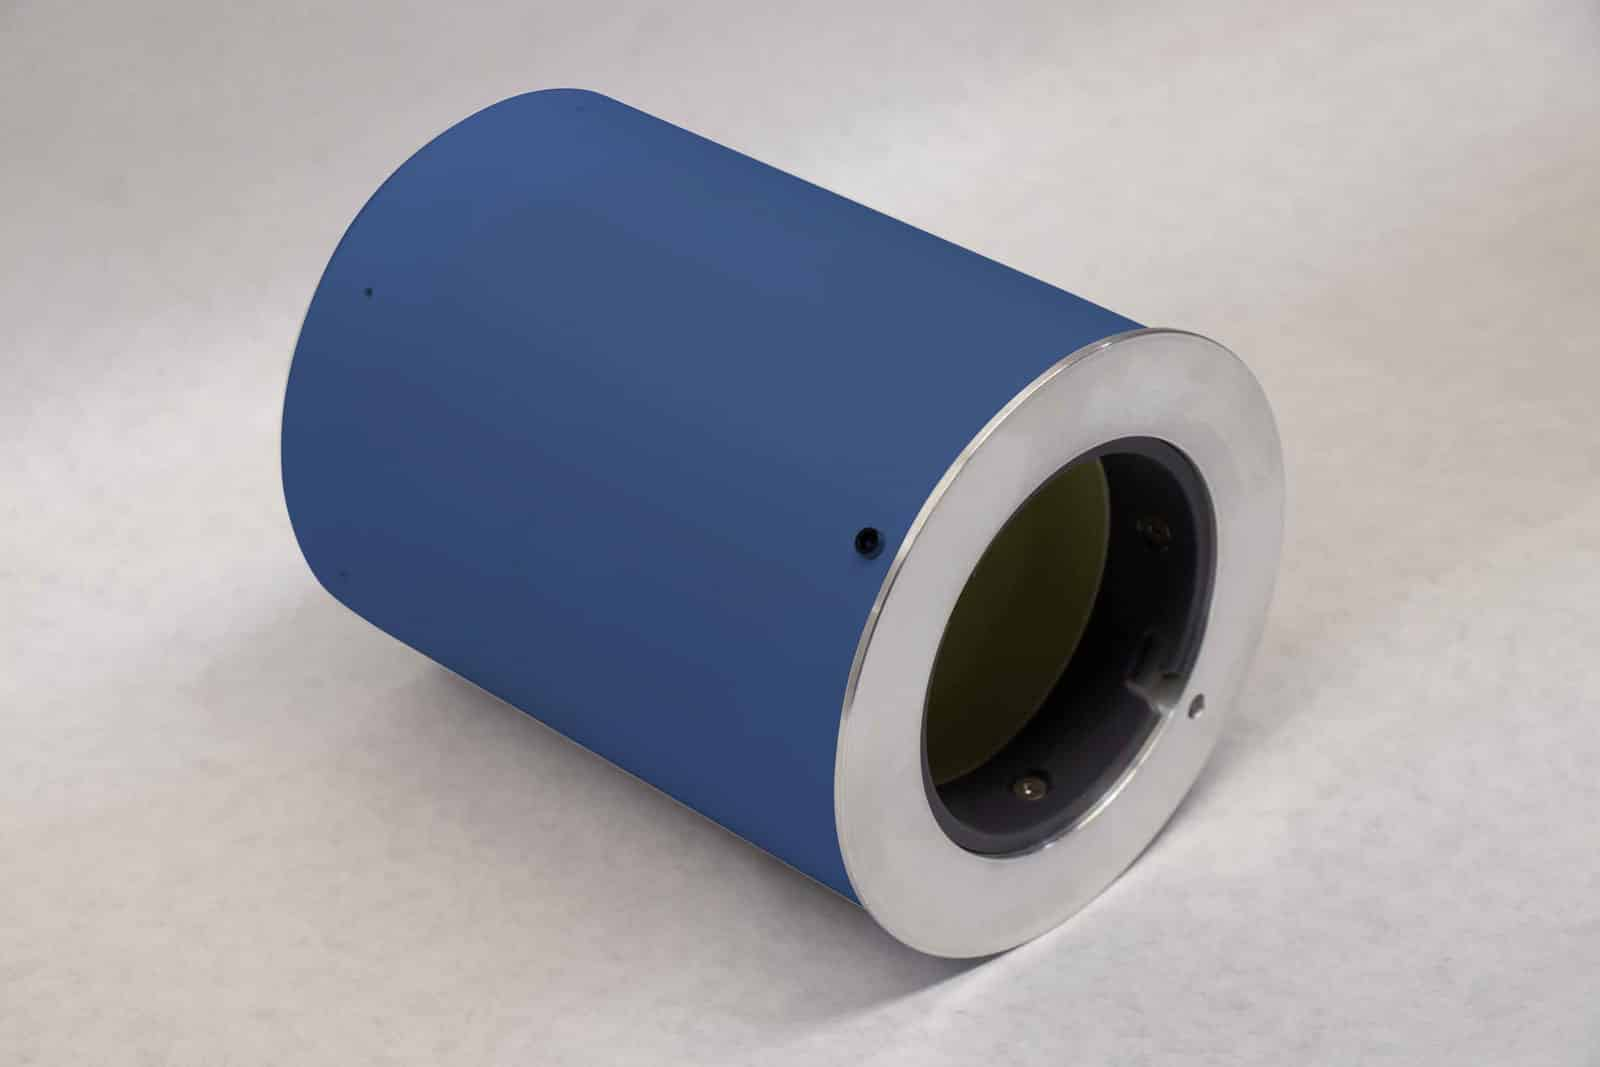 Printers rely on MECA for print sleeves that enhance performance